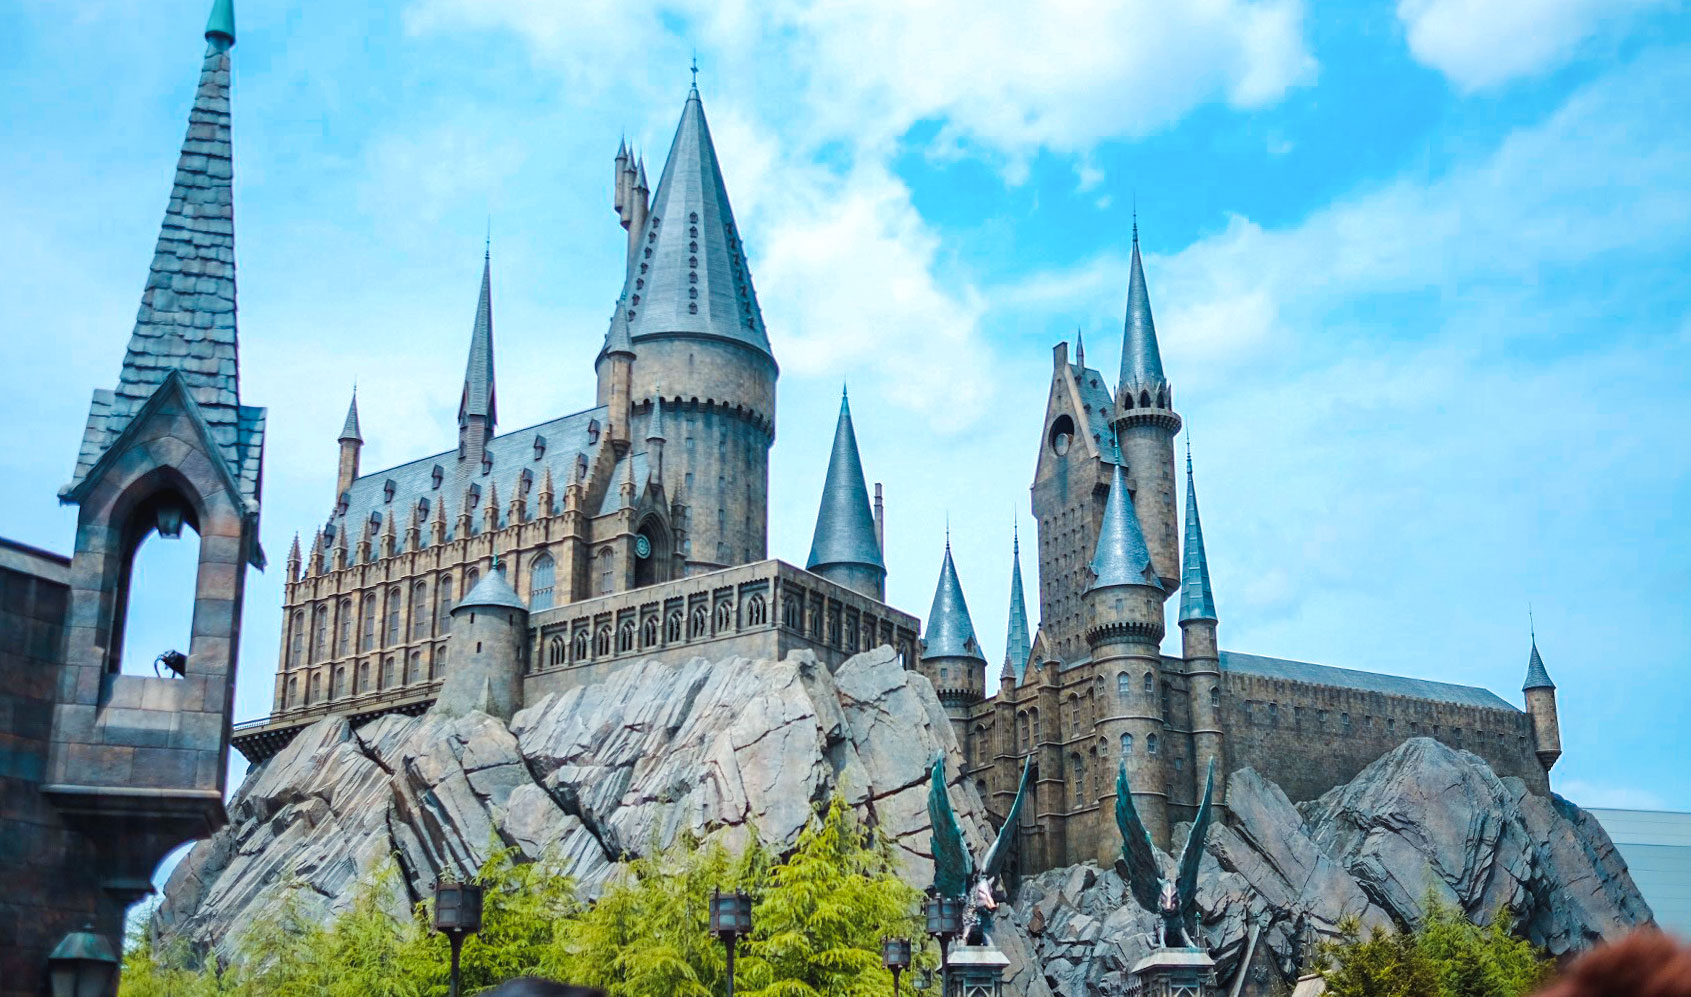 Hogwarts Castle at Universal Studio Japan